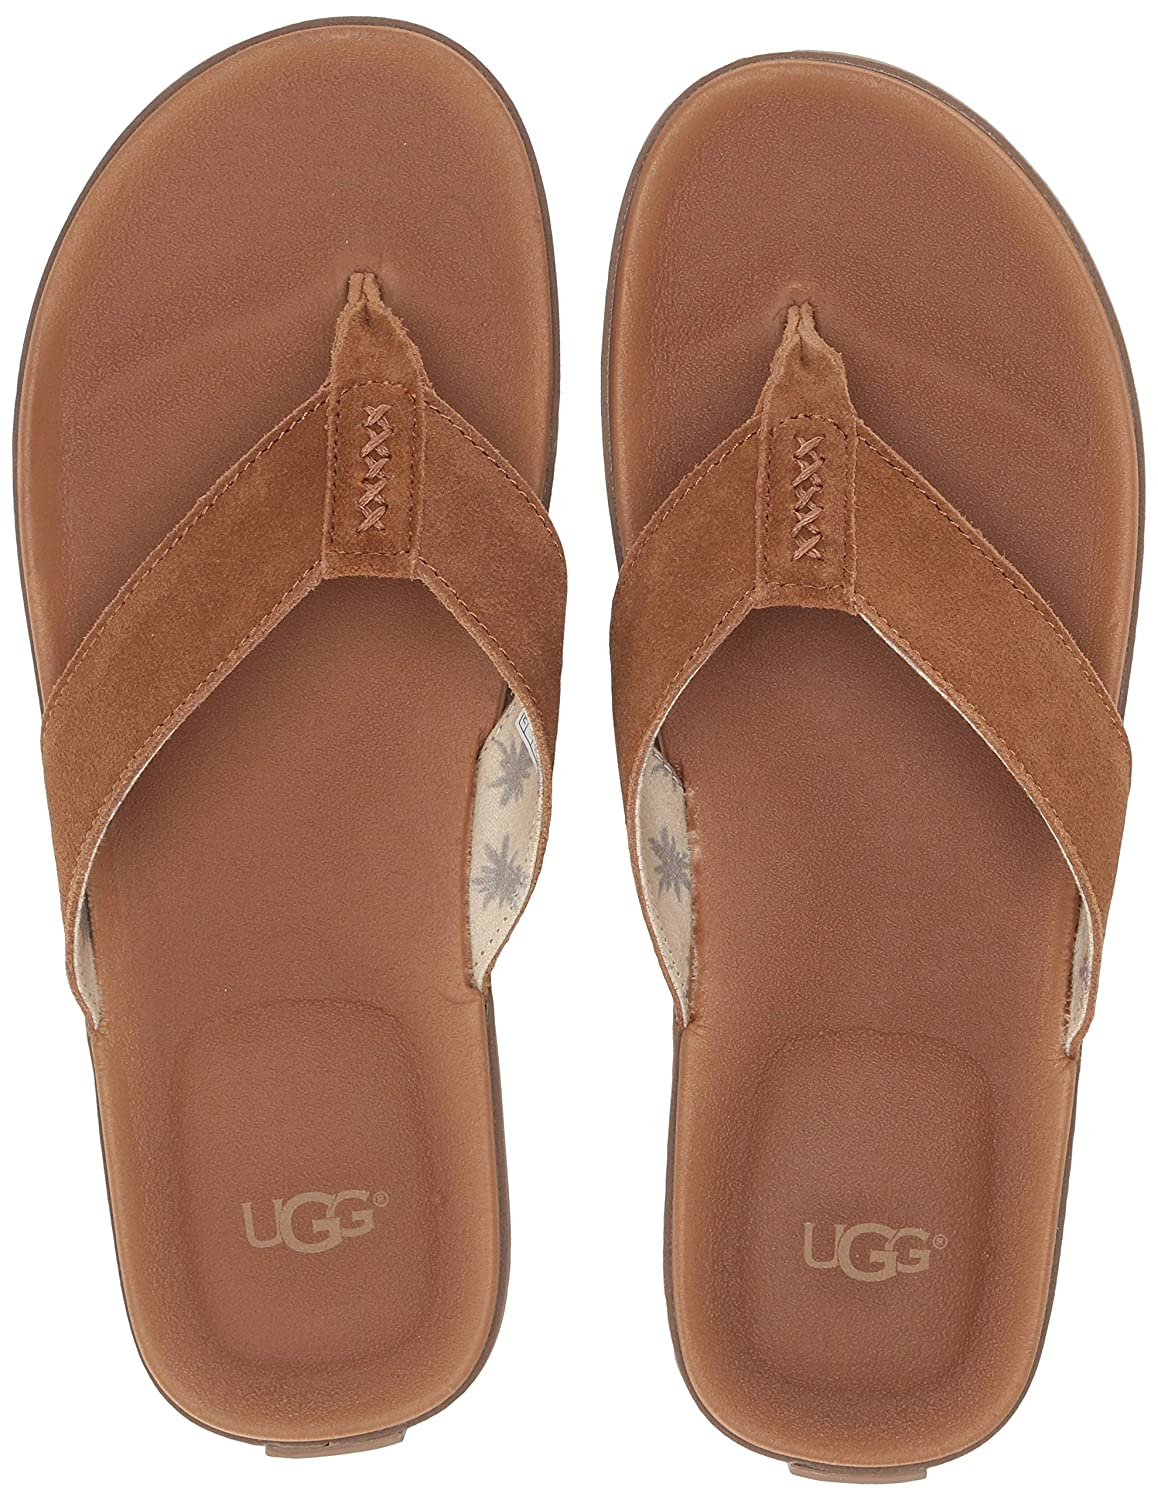 UGG - Beach Flip 1020084 - Chestnut